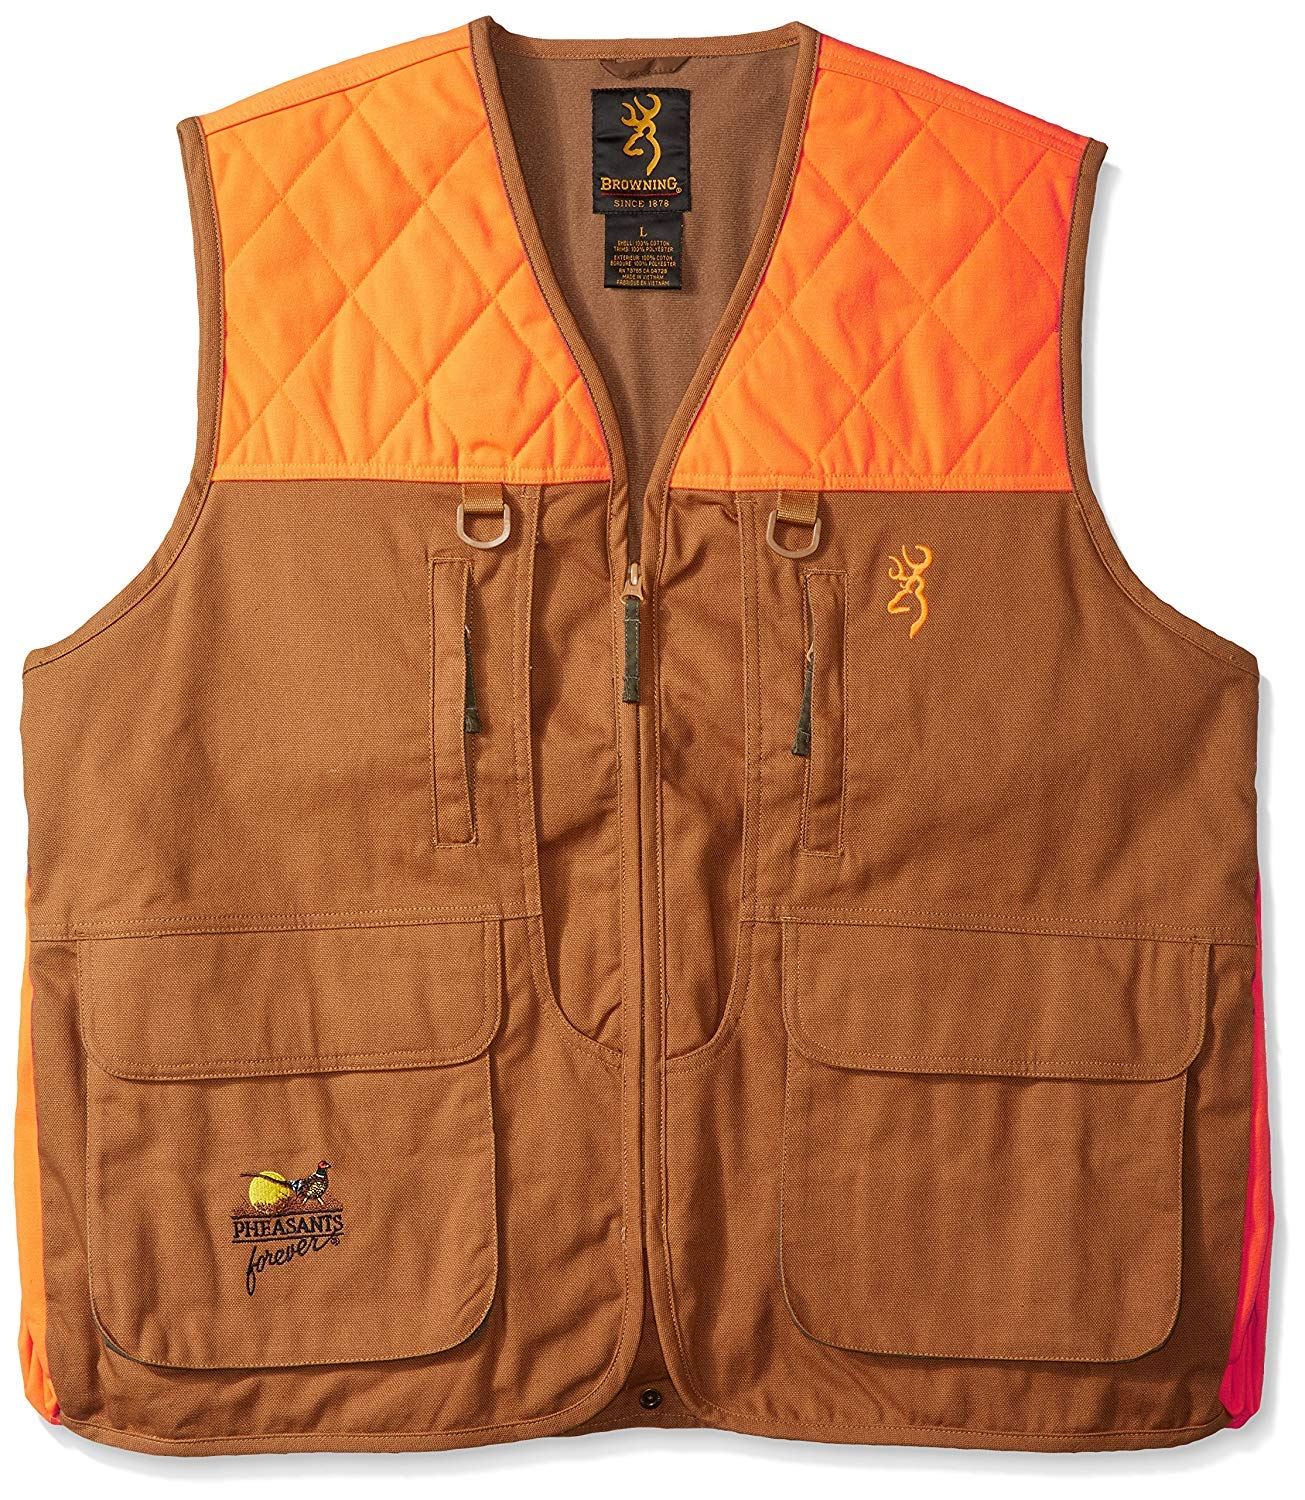 Browning Pheasants Forever Vest, Khaki/Blaze, X-Large by Browning